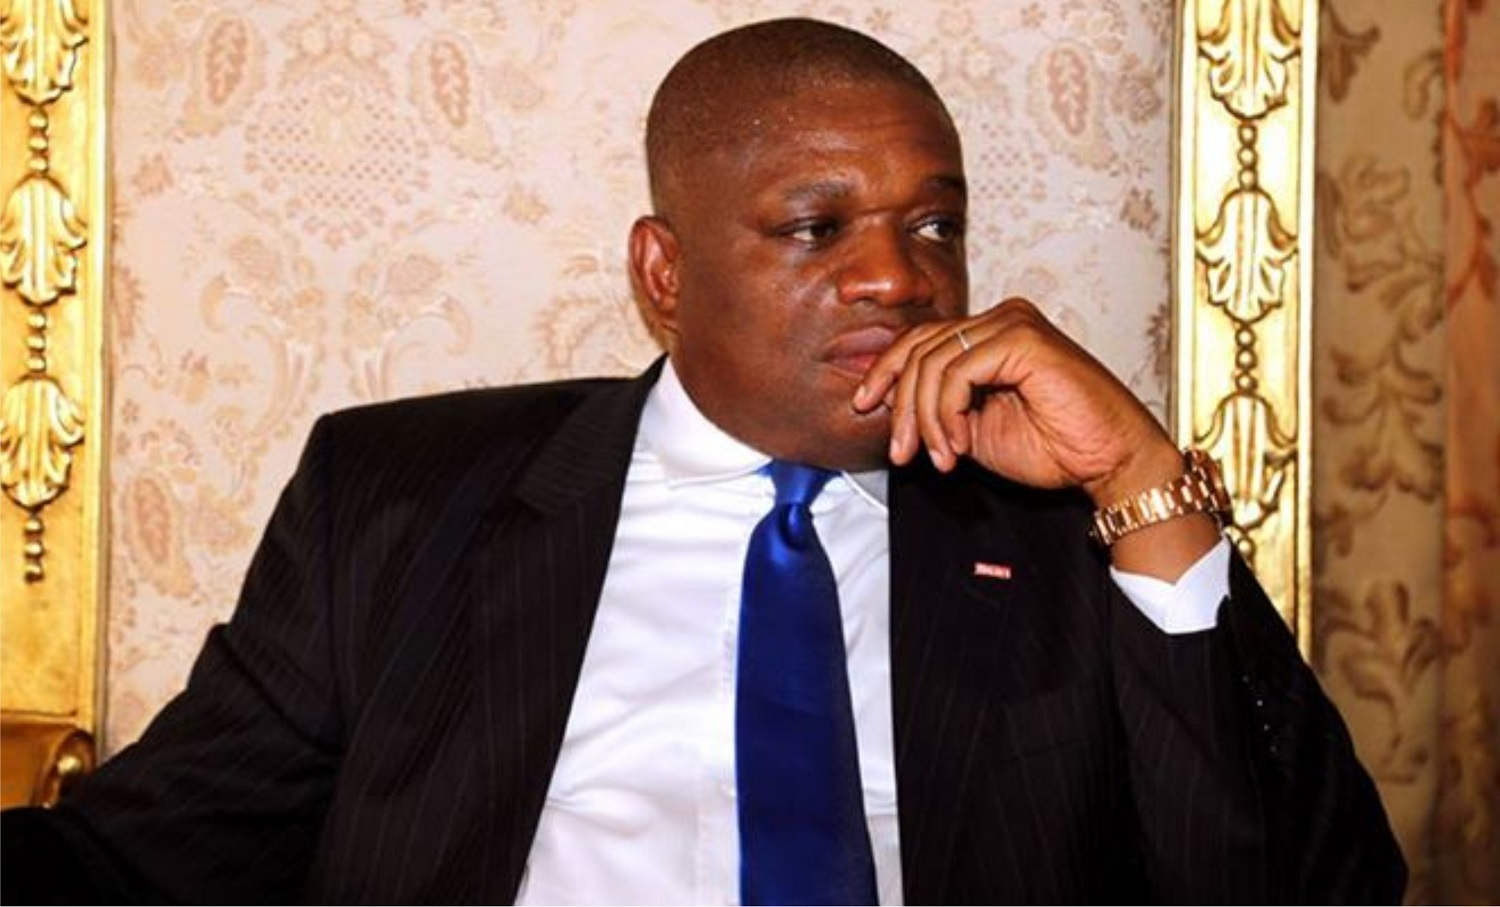 Alleged N7.1bn Fraud: EFCC to arraign Orji Uzor Kalu on Tuesday